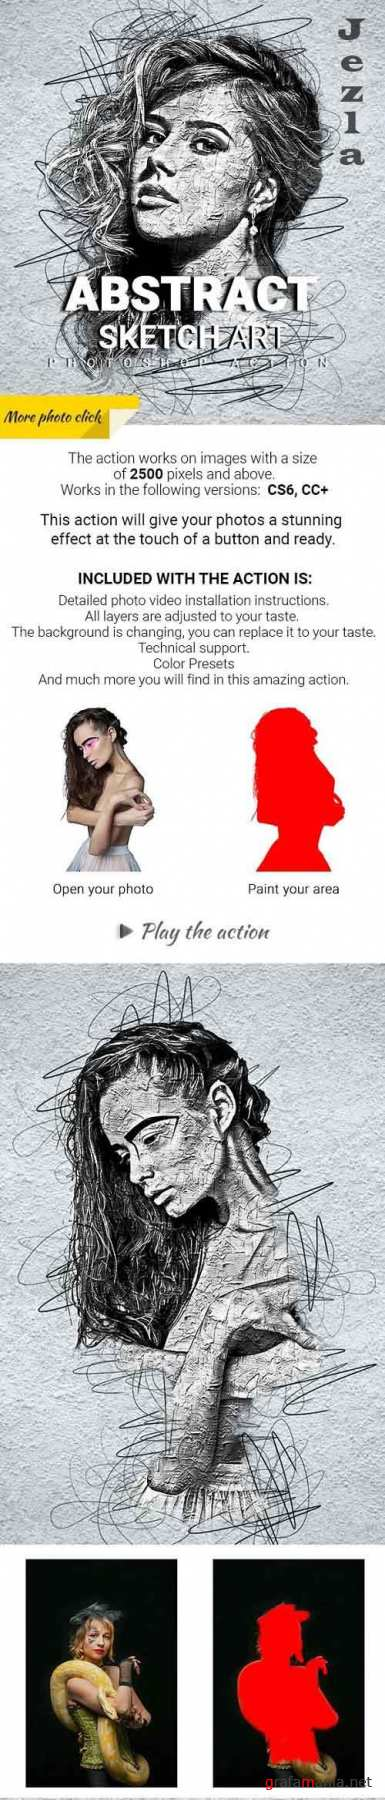 GraphicRiver - Abstract Sketch Art Photoshop Action 29913460